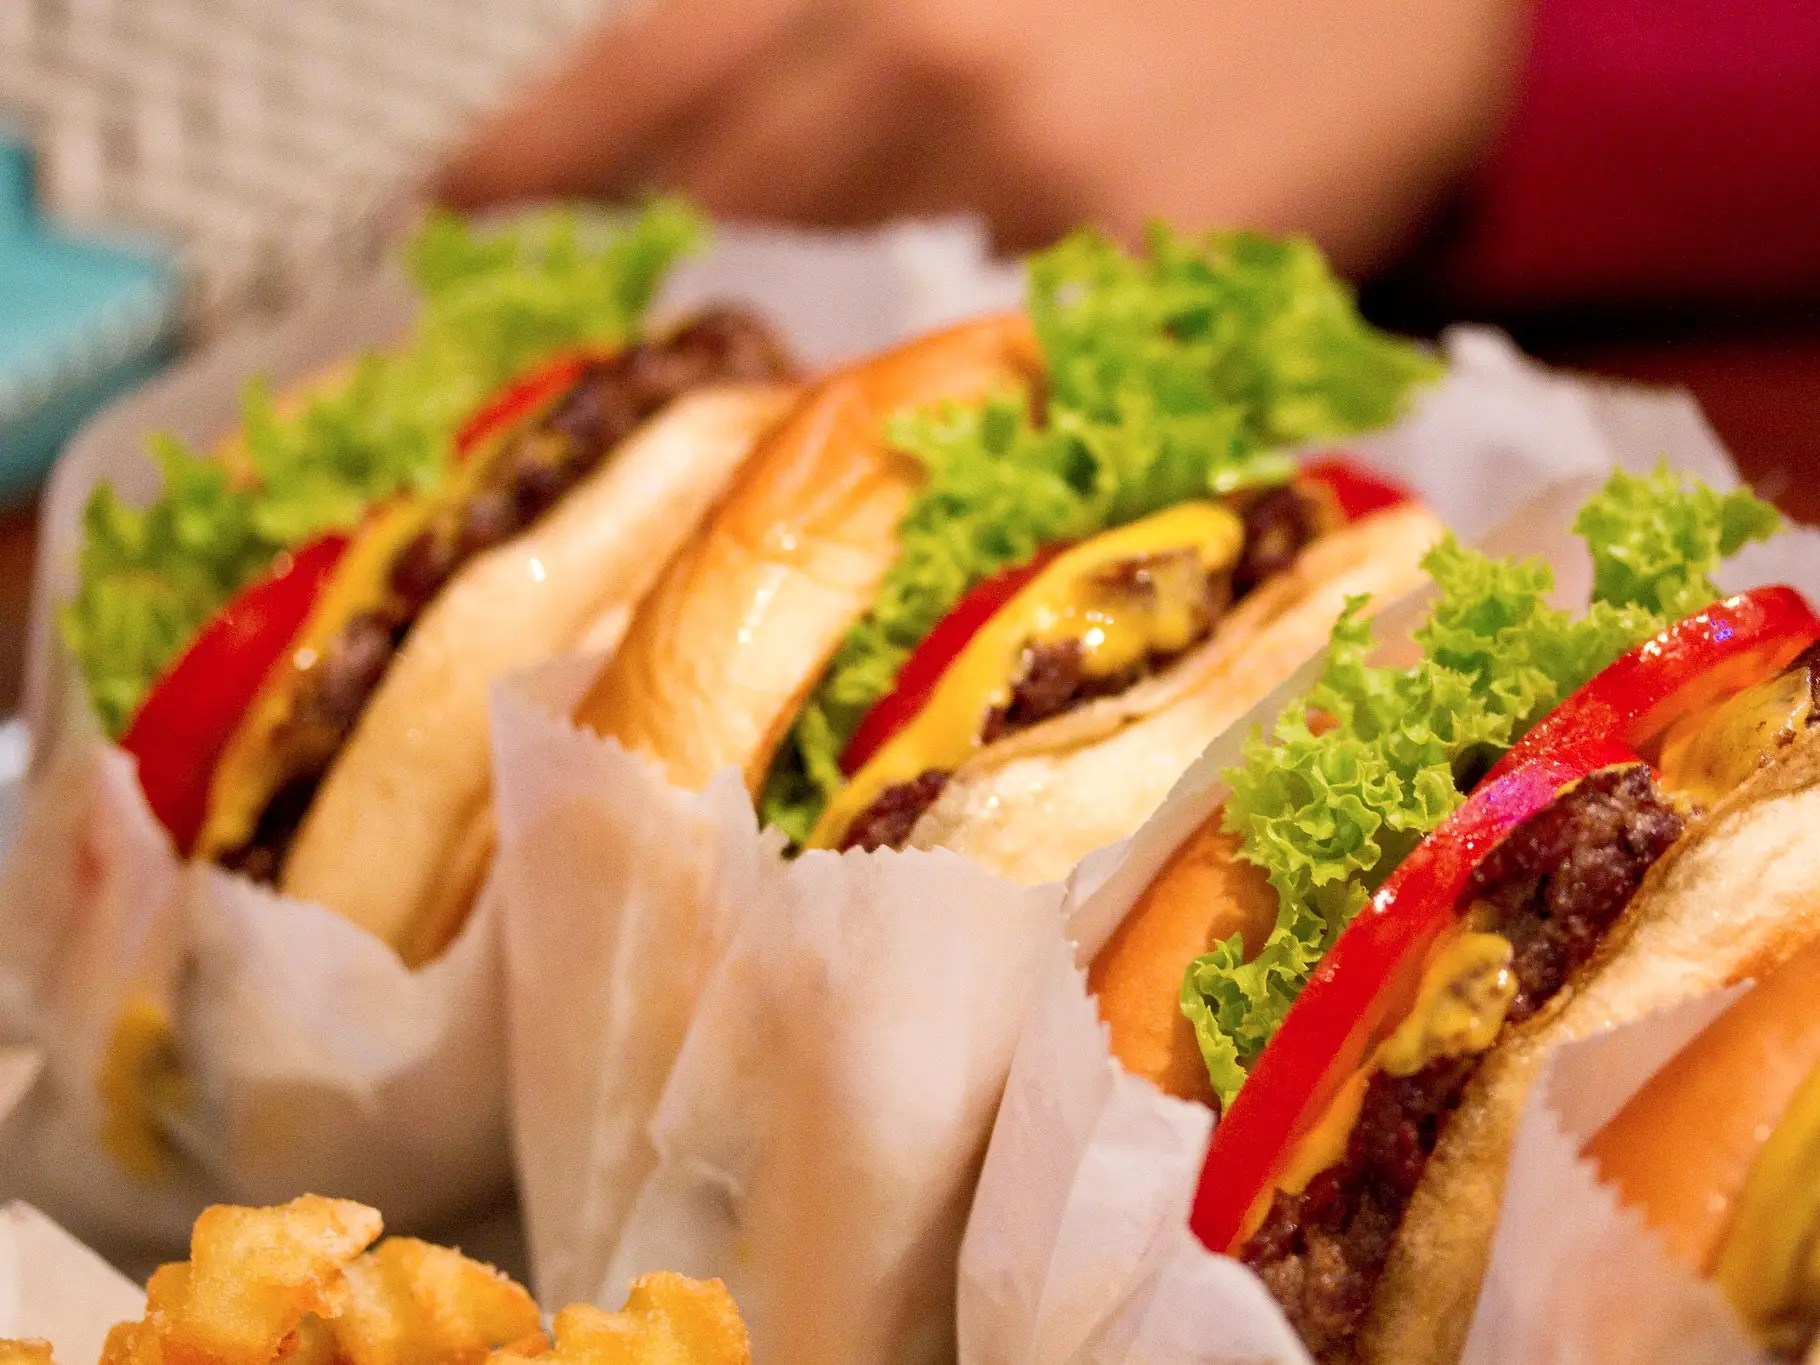 Top 5 Fast Food Franchises